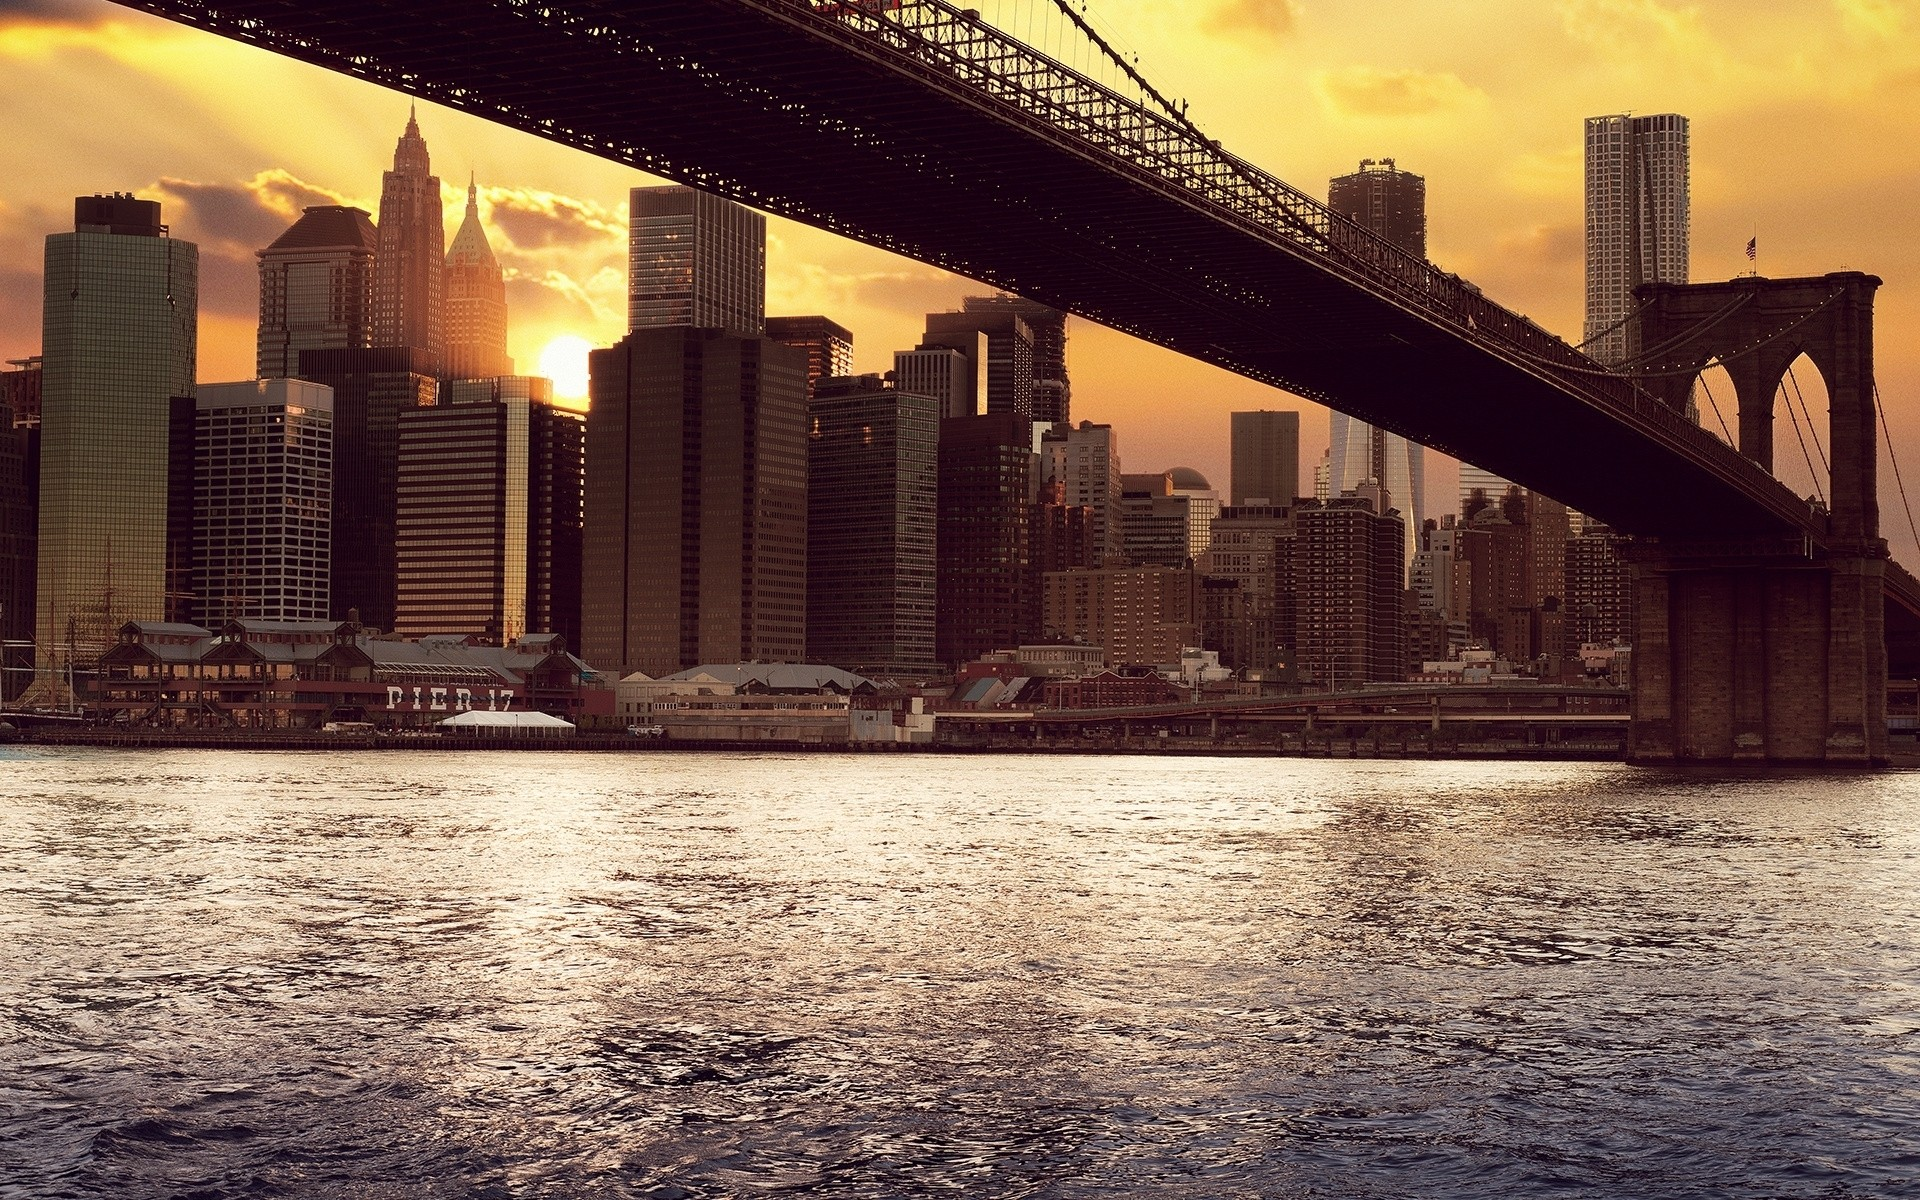 daily wallpaper: pier 17, brooklyn, new york city | i like to waste